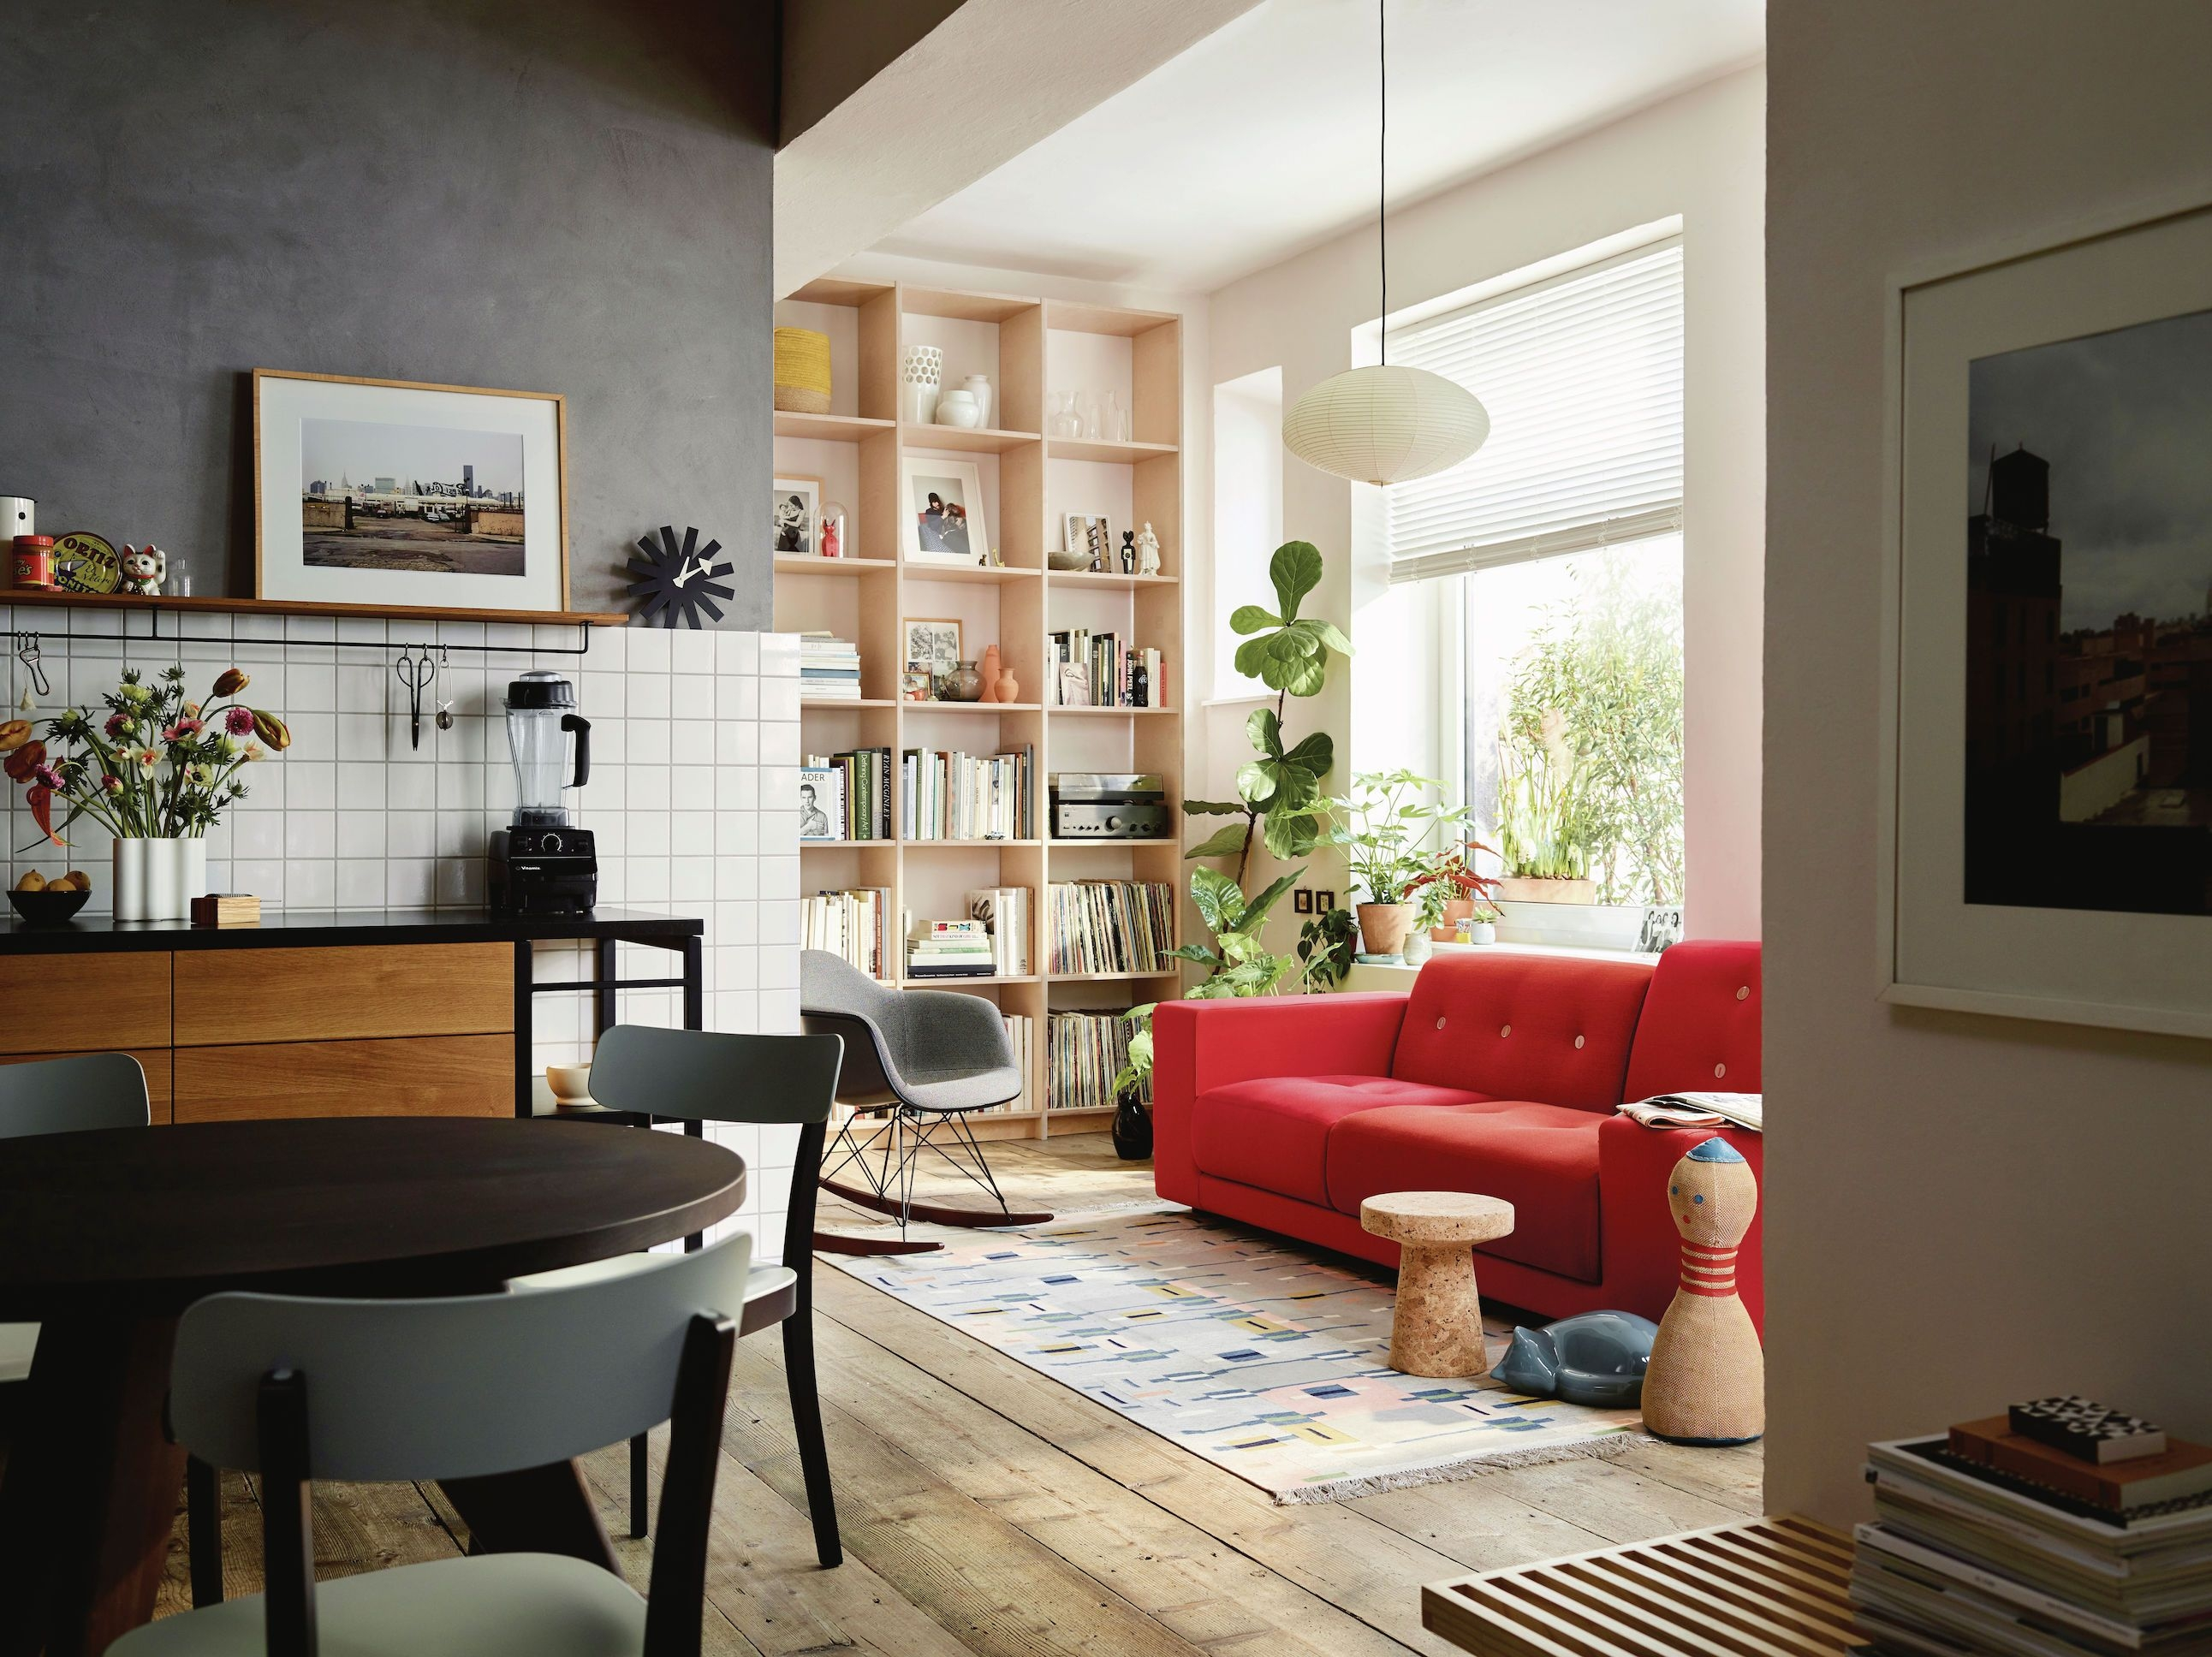 8 Easy Small Room Ideas Compact Living   Partition Of Stairs In Living Room   Lobby   Storage   Open Plan   Divider   Wood Paneling